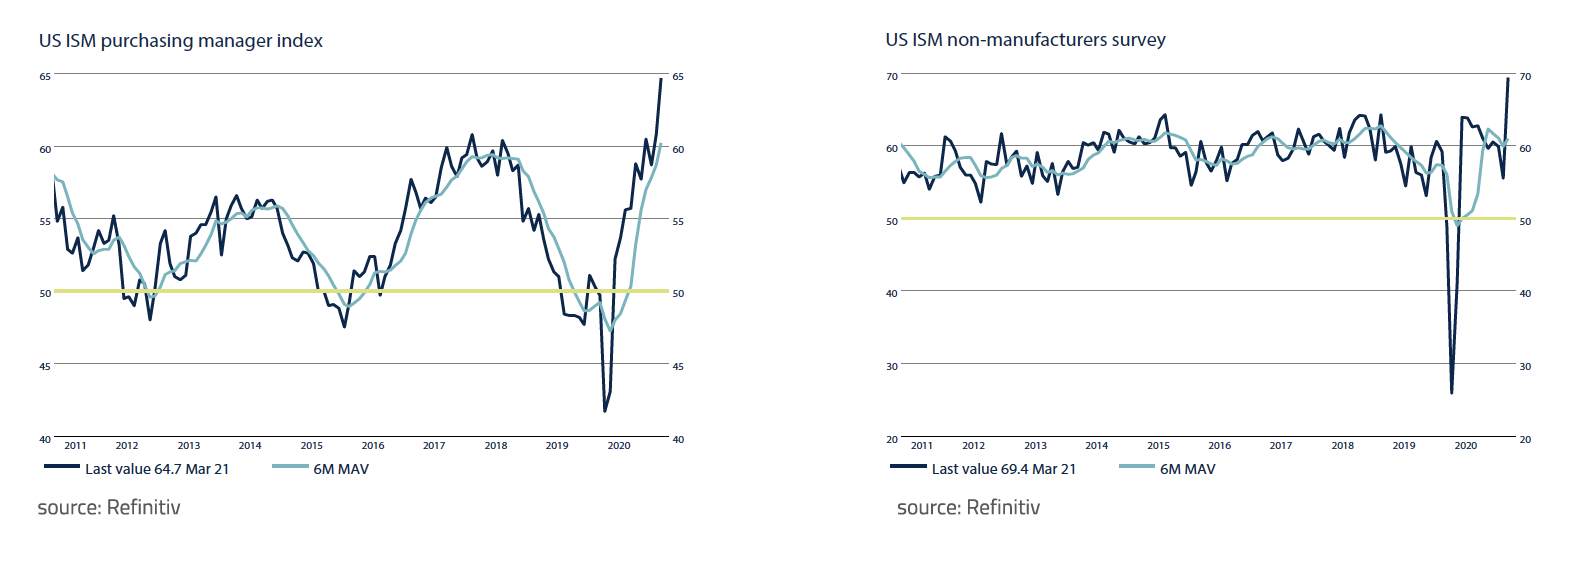 US ISM purchasing manager index